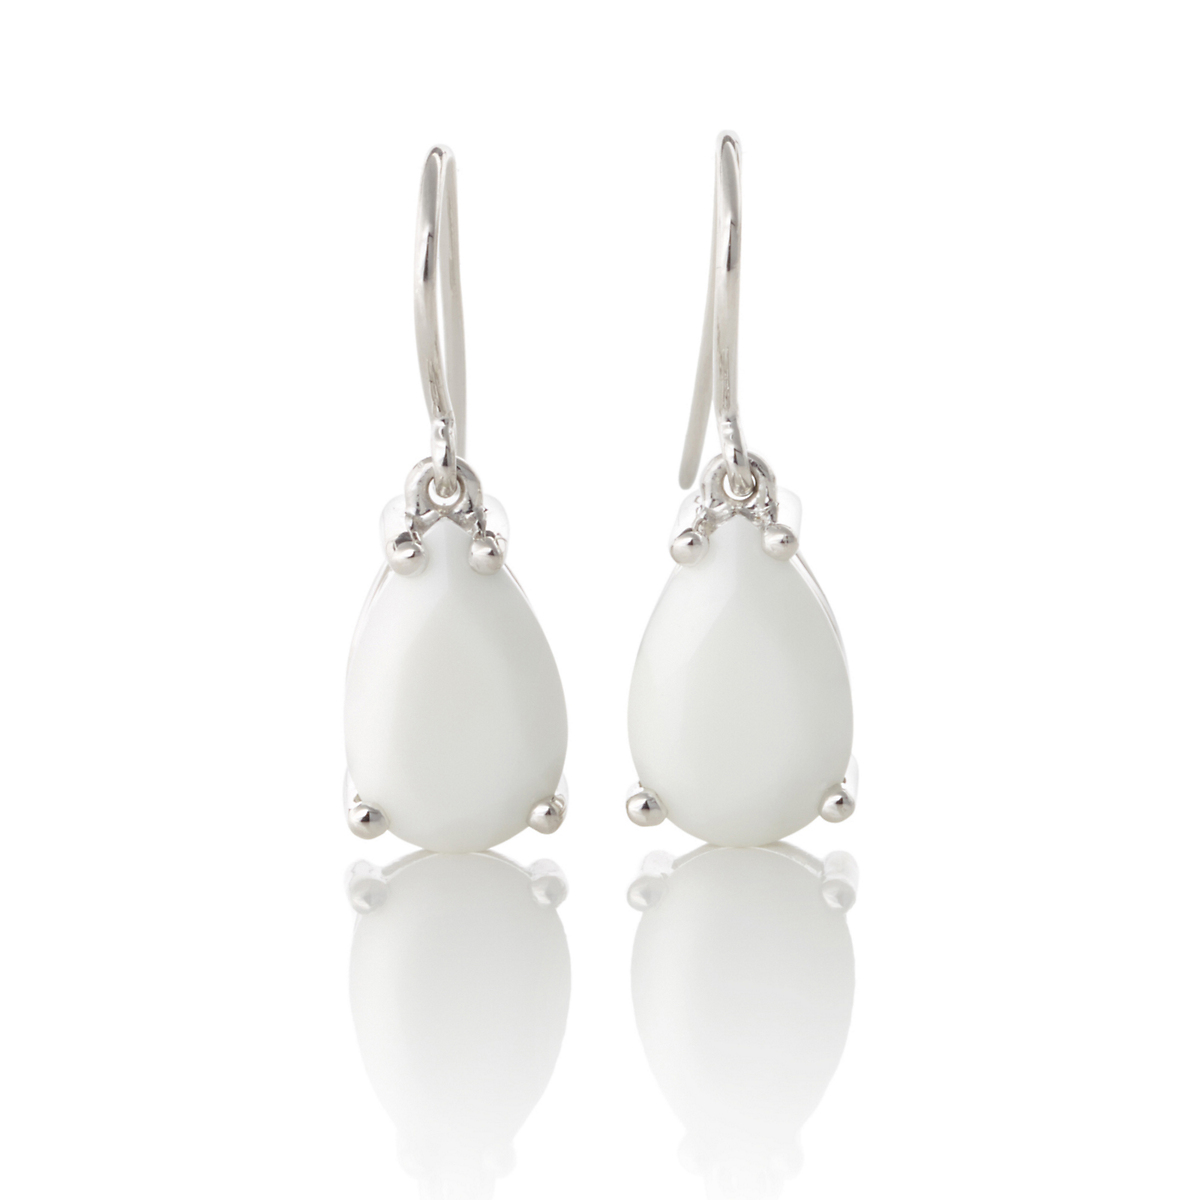 Gump's Faceted White Agate Teardrop Earrings